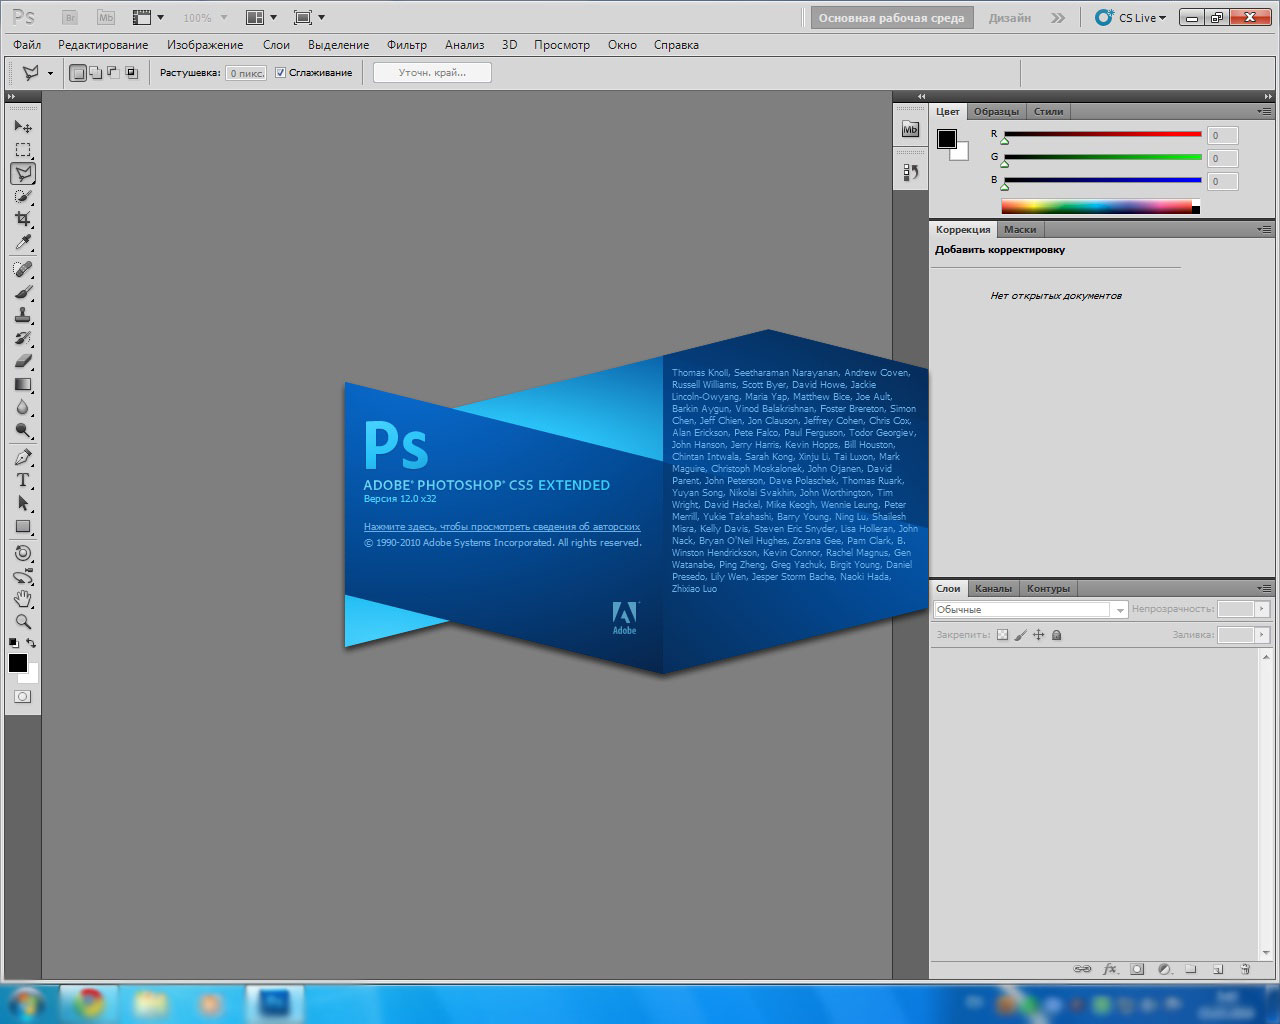 Adobe photoshop cs4 extended final portable edition